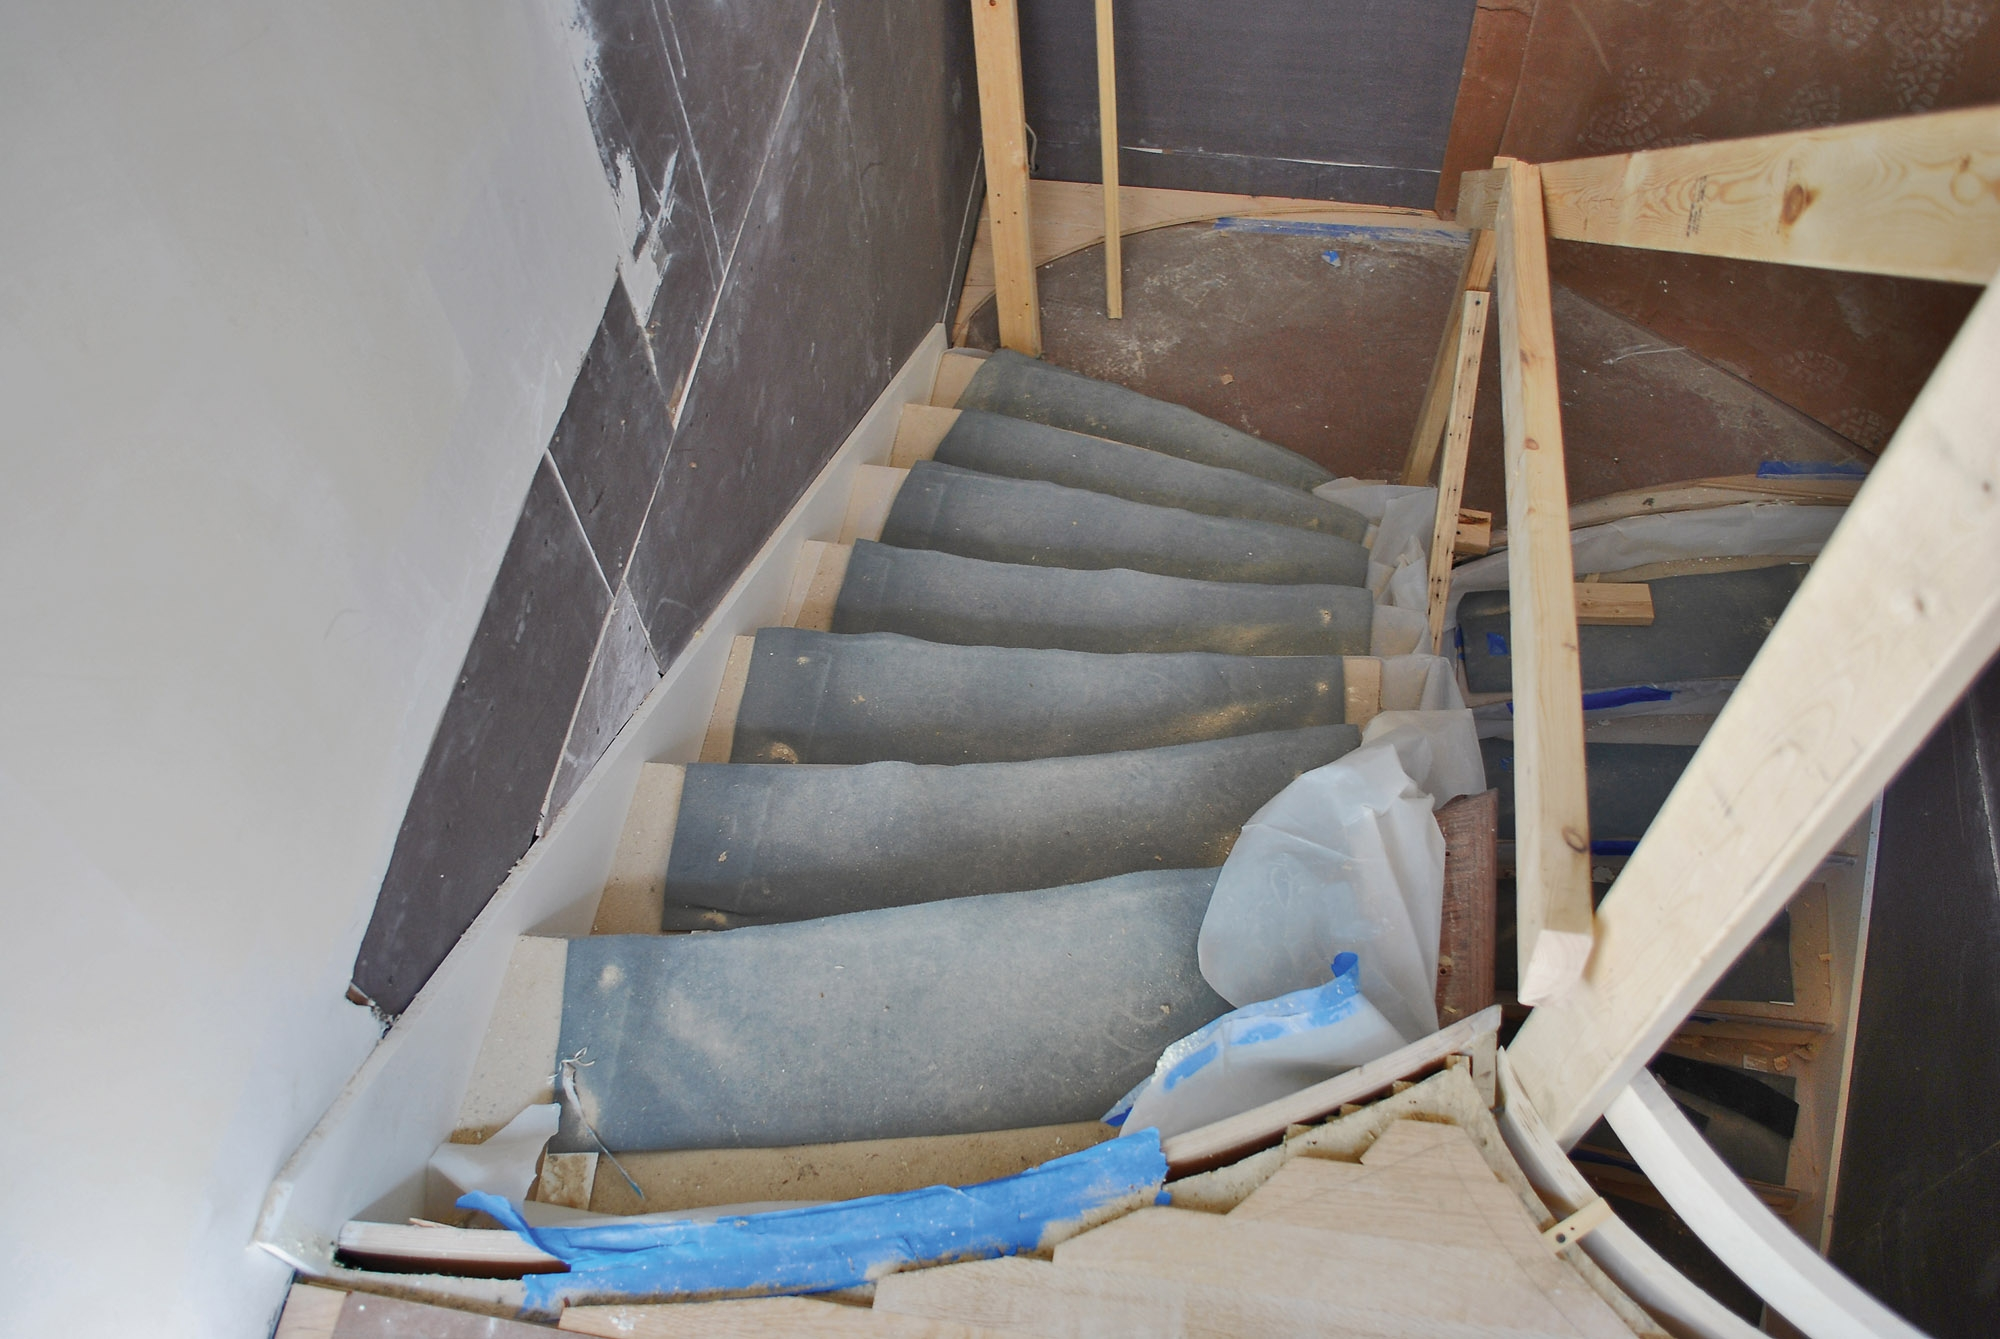 Repairs To Stairs Old House Journal Magazine | 2X4 Railing For Stairs | Solid Wood | 6 Foot | Stairway | Temporary | Natural Hardwood